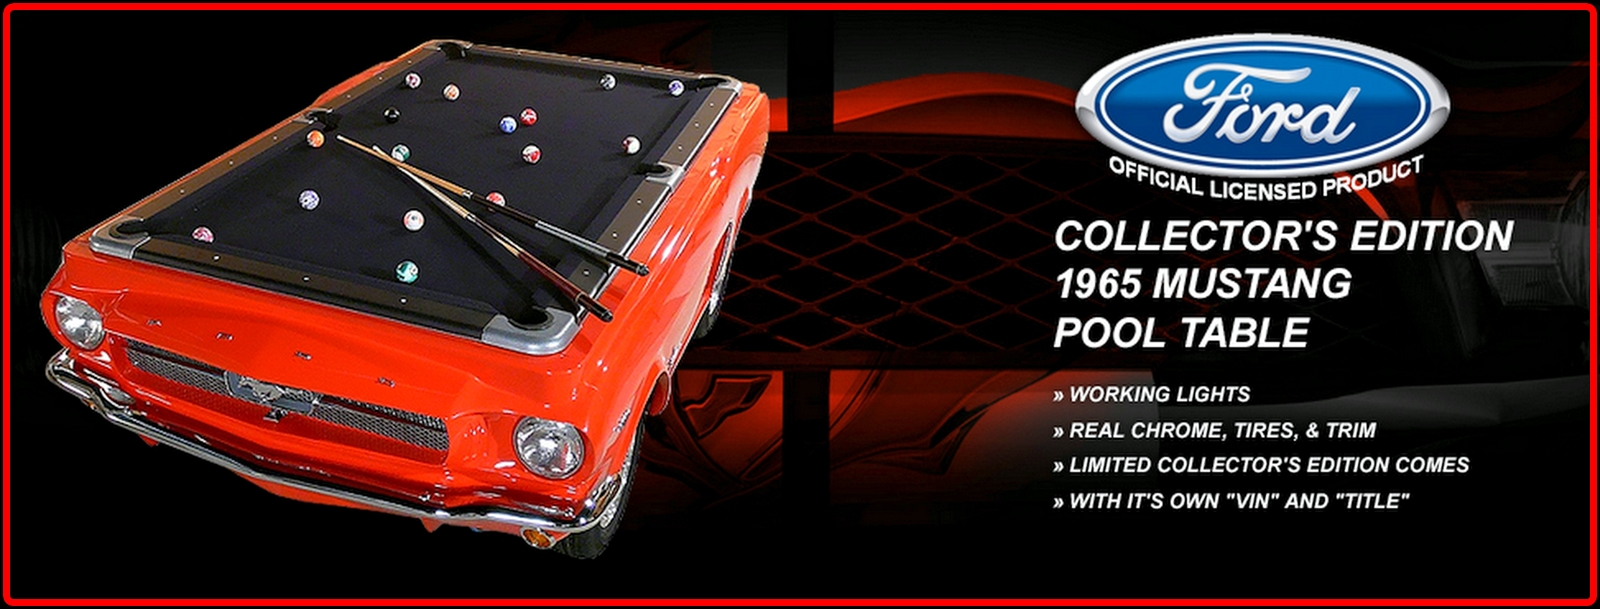 The Collectors Edition Car Pool TablesMustang Shelby Corvette - Mustang pool table